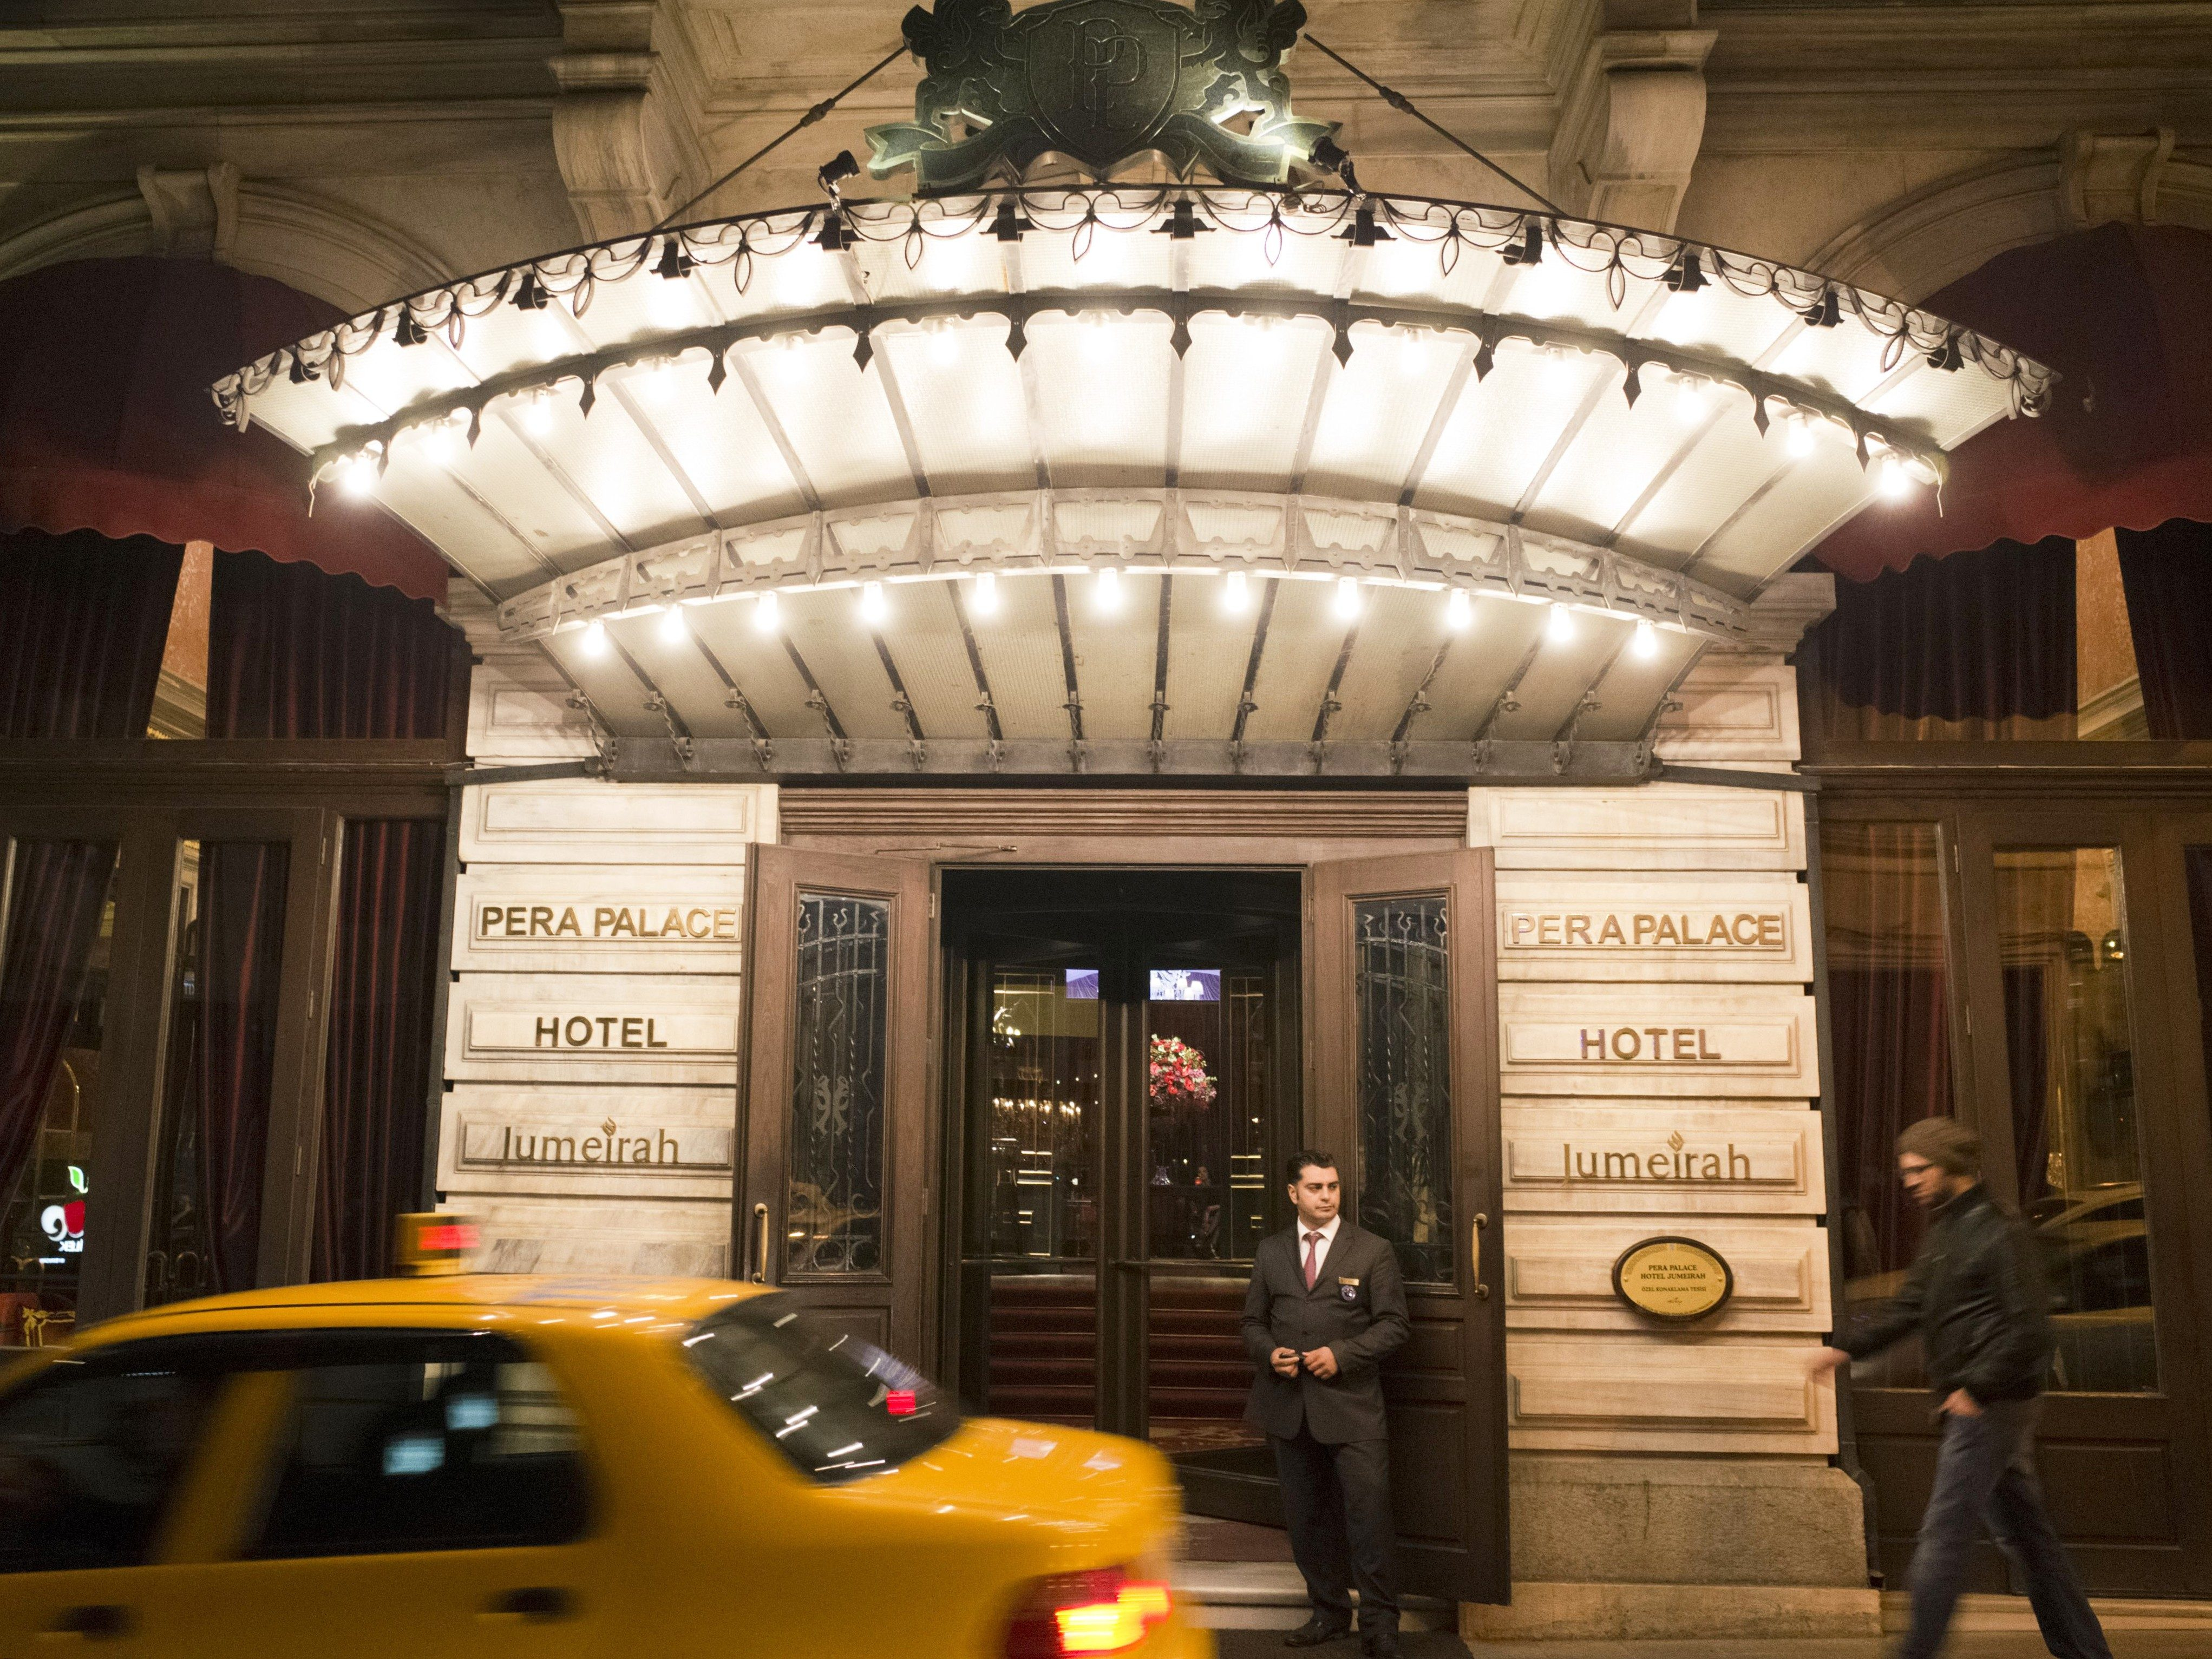 Mandatory Credit: Photo by David Pearson/Shutterstock (4706373i) Entrance to the Pera Palace Hotel in Beyoglu Istanbul, Turkey - Mar 2015